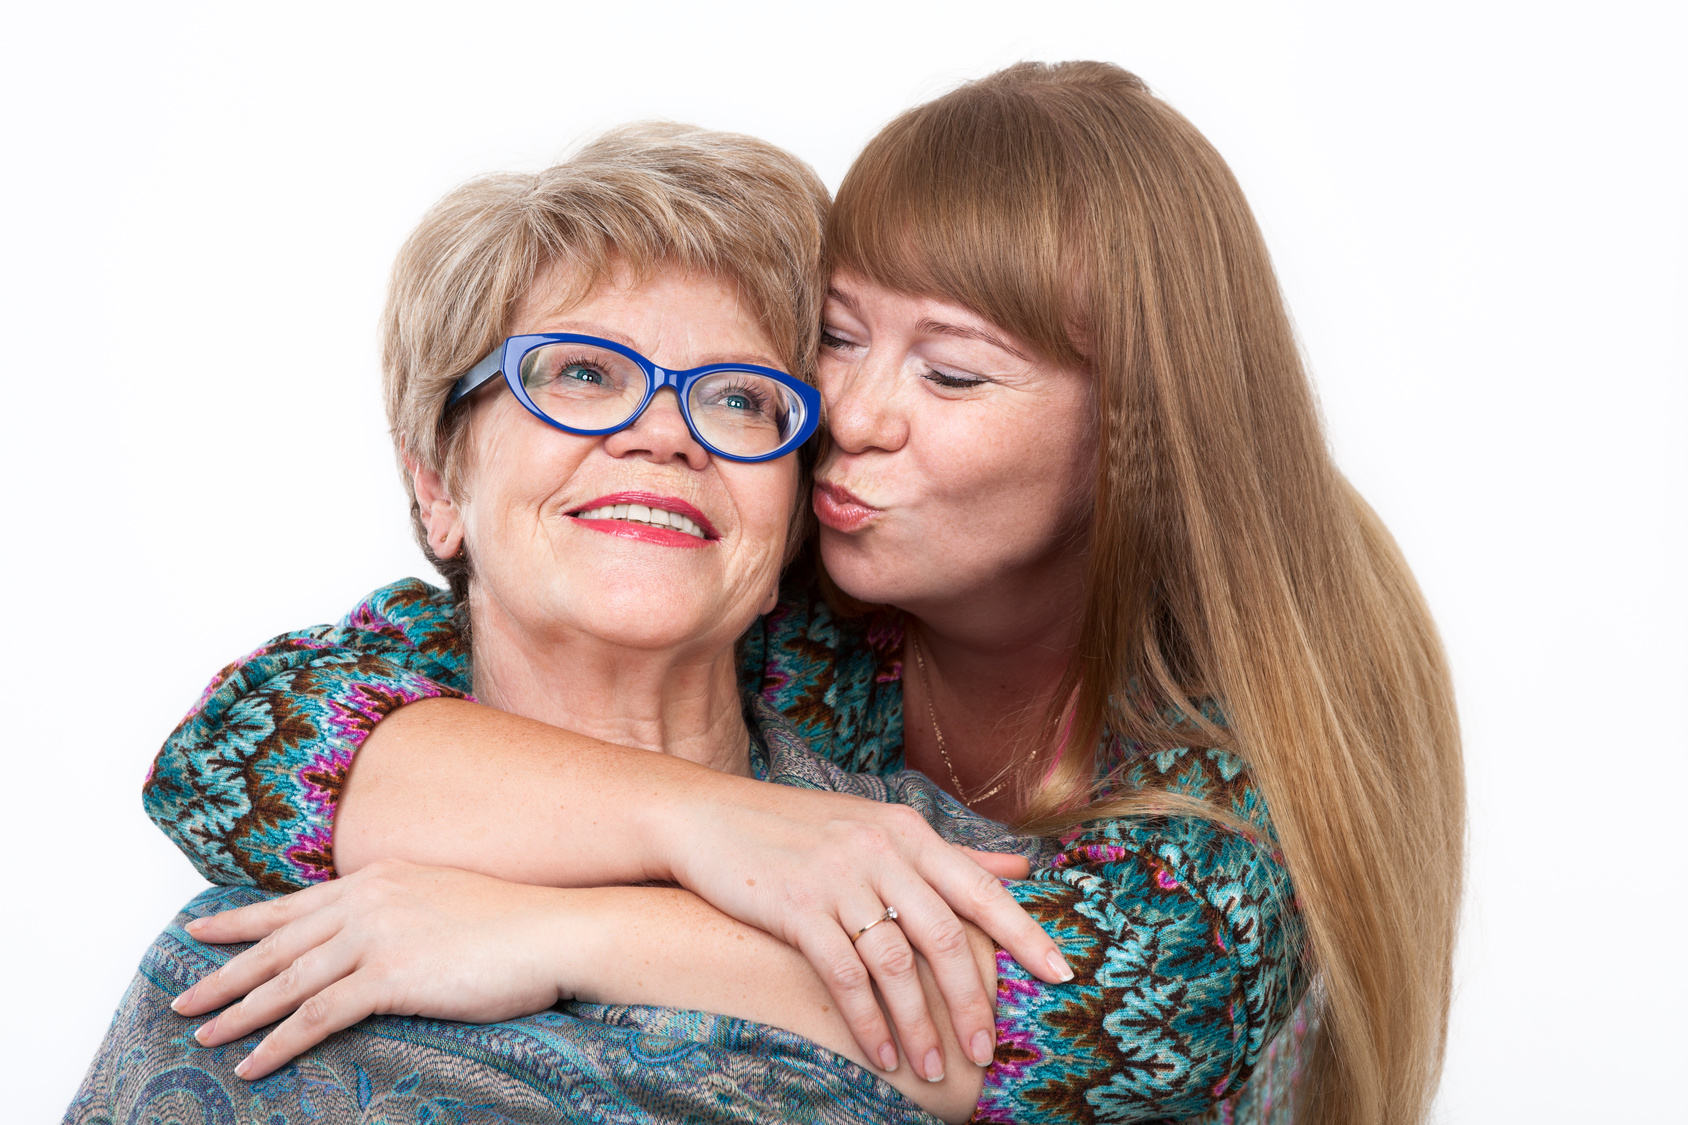 Adult daughter hugging and kissing elderly mother on cheek